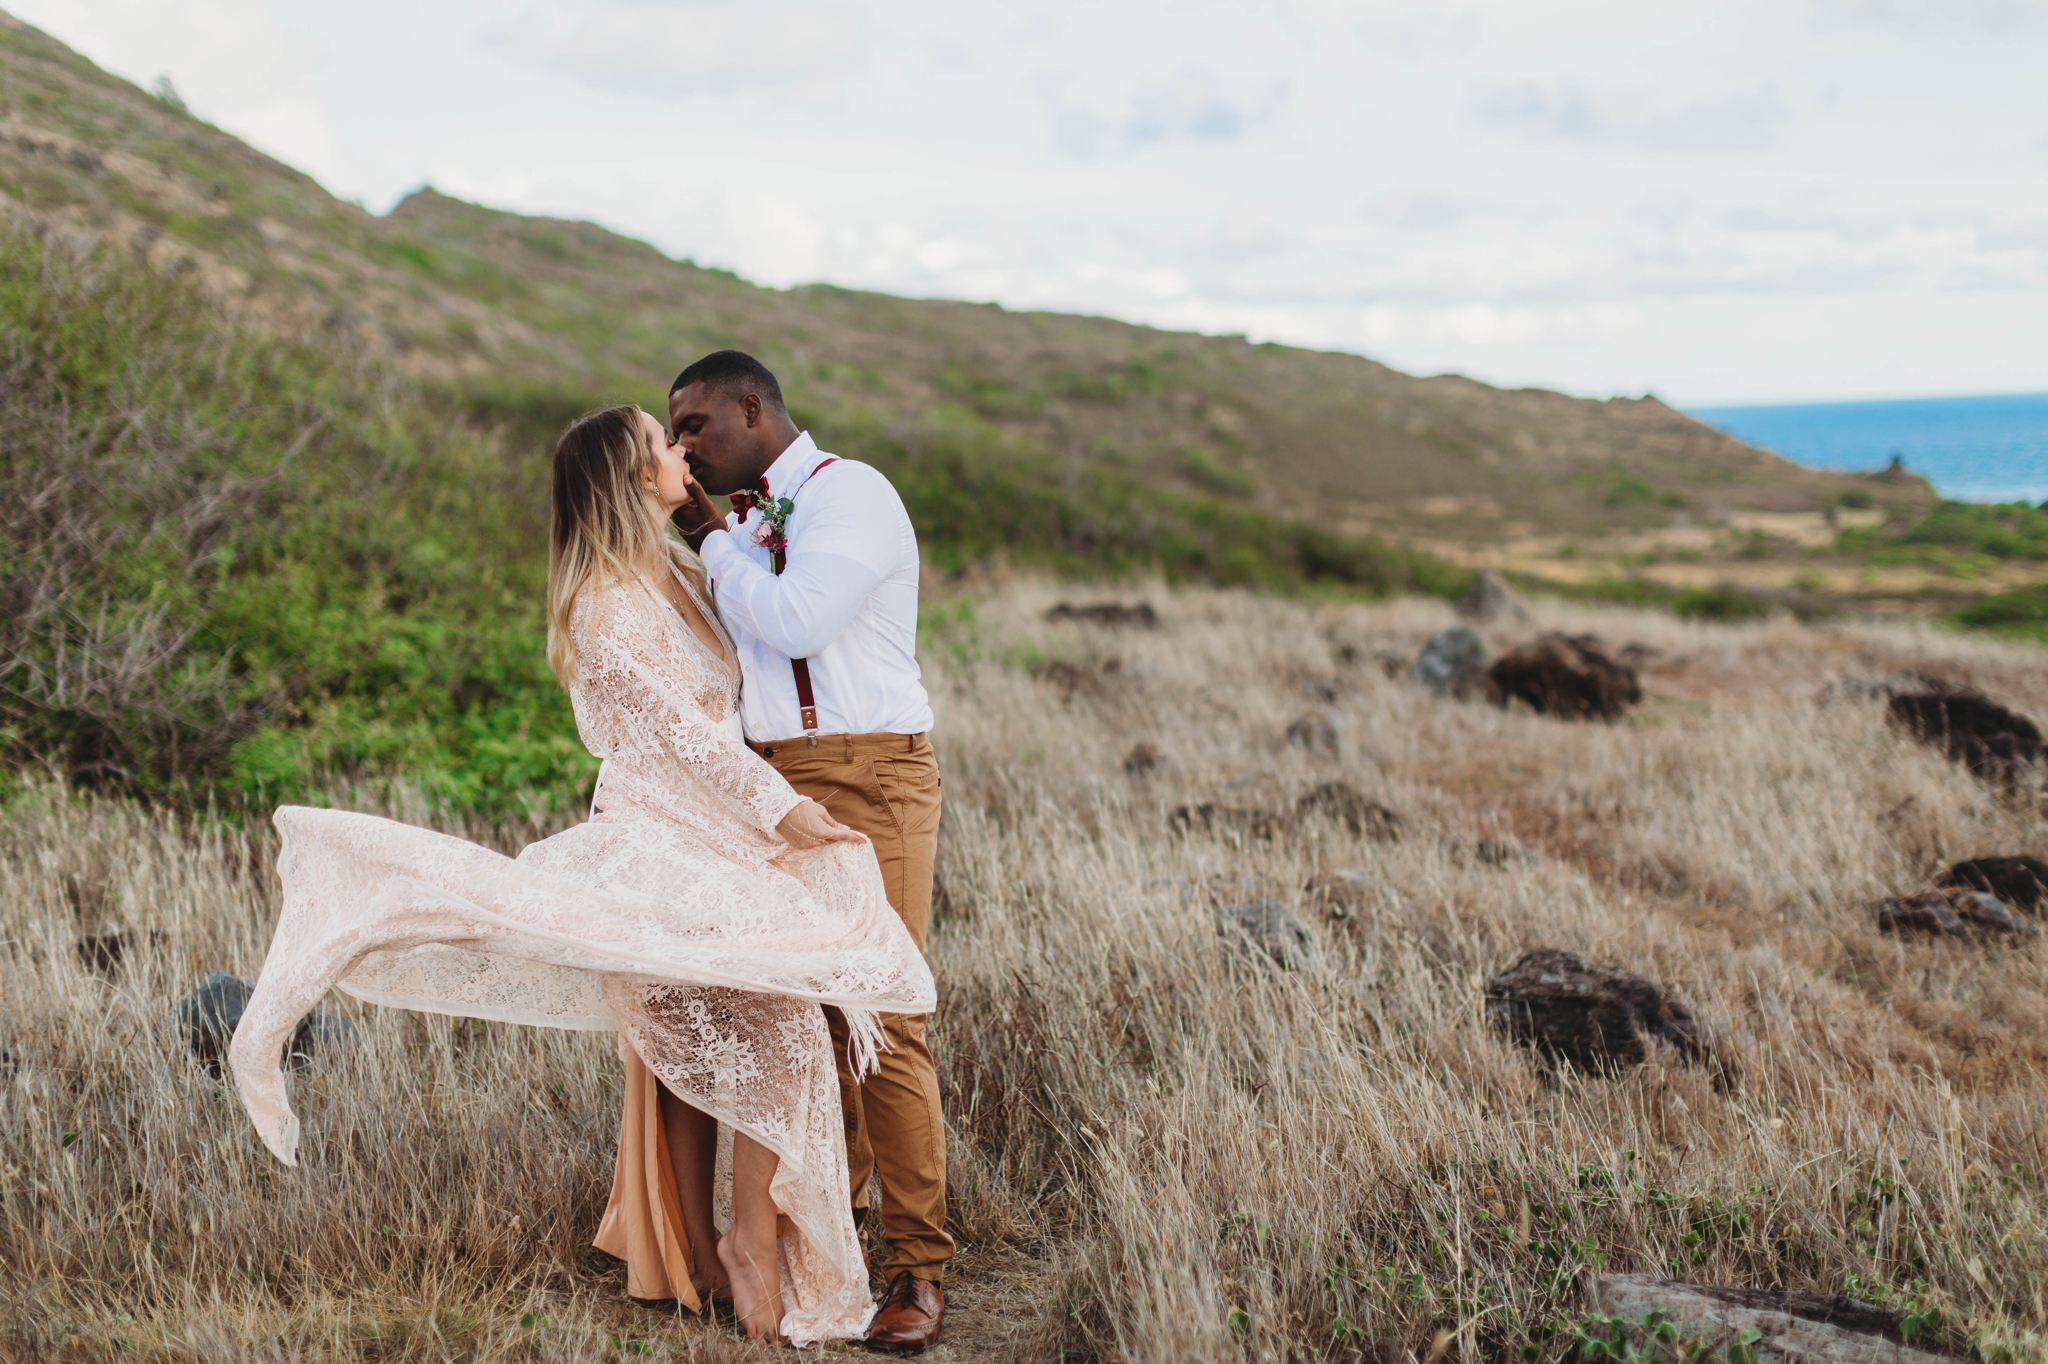 Elopement at Makapuu Lookout, Waimanalo, HI - Oahu Hawaii Engagement Photographer - Bride in a flowy fringe boho wedding dress - in grassy mountains with the ocean in the back - lanikai lookout - deutsche hochzeits fotografin in hawaii